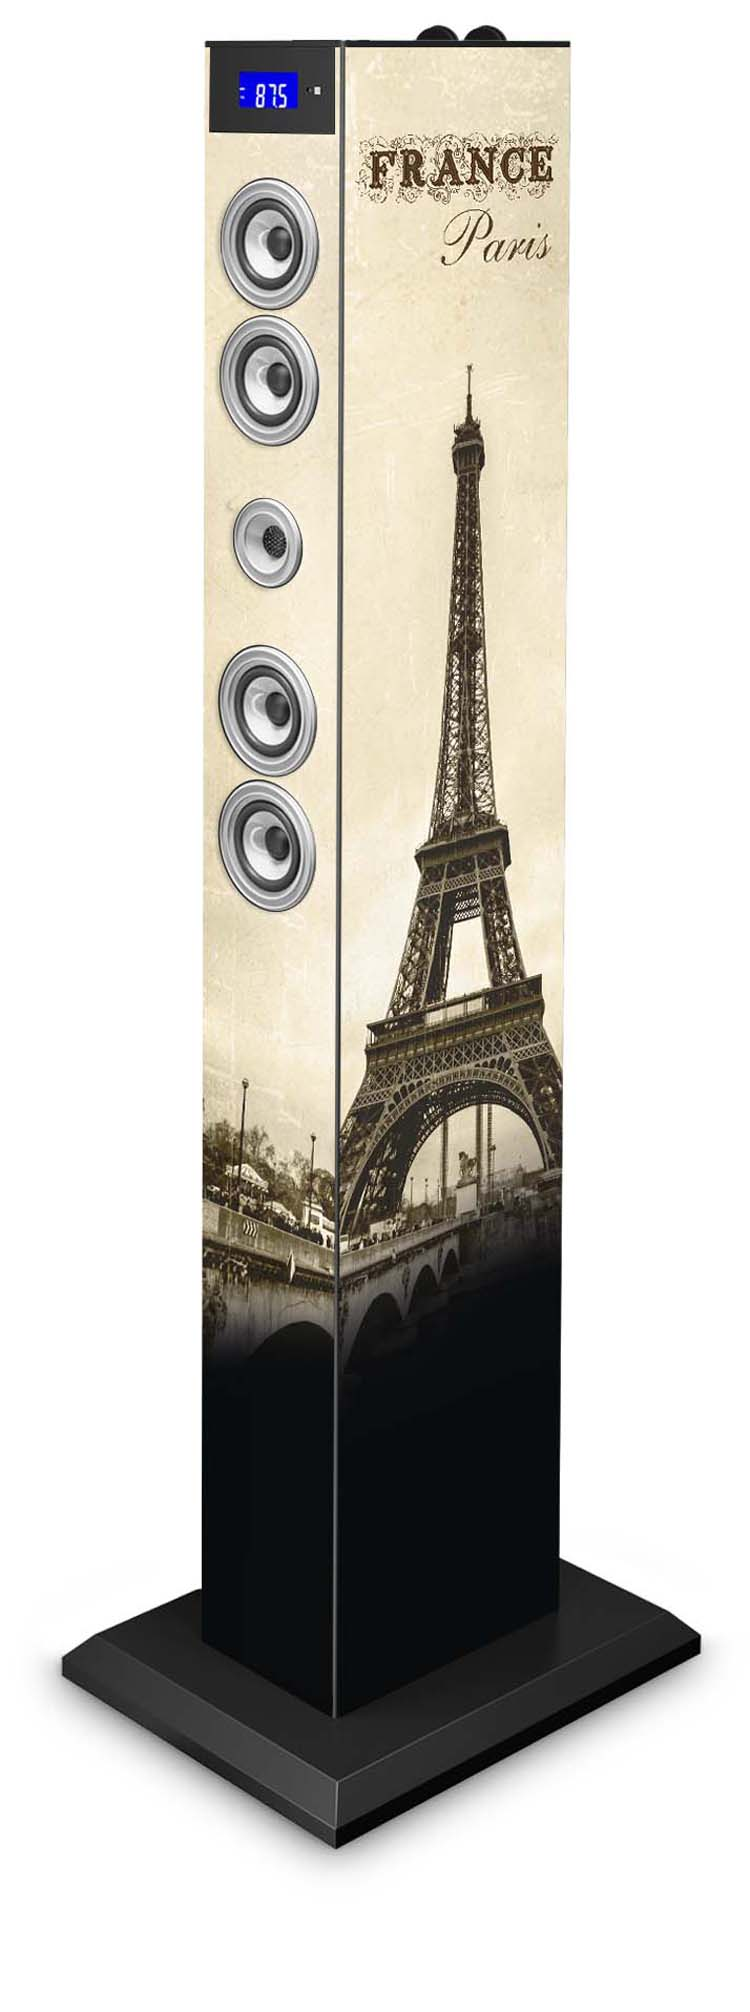 bluetooth multimedia tower paris bigben us bigben audio gaming smartphone tablet. Black Bedroom Furniture Sets. Home Design Ideas